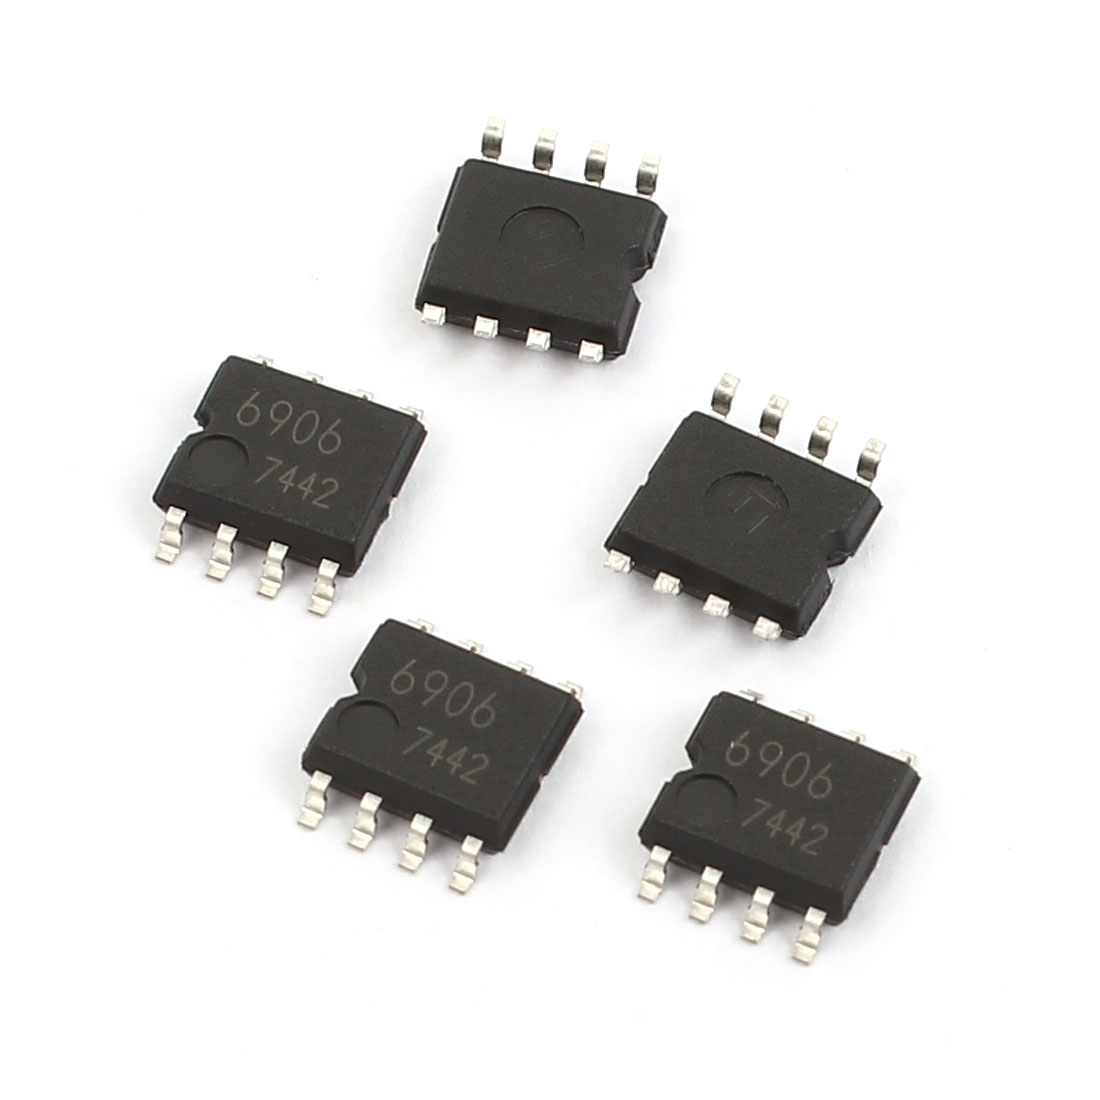 5 Pcs BA6906F SOP-8 Single-Phase Full-Wave Motor Driver IC Chip for Fan Motor